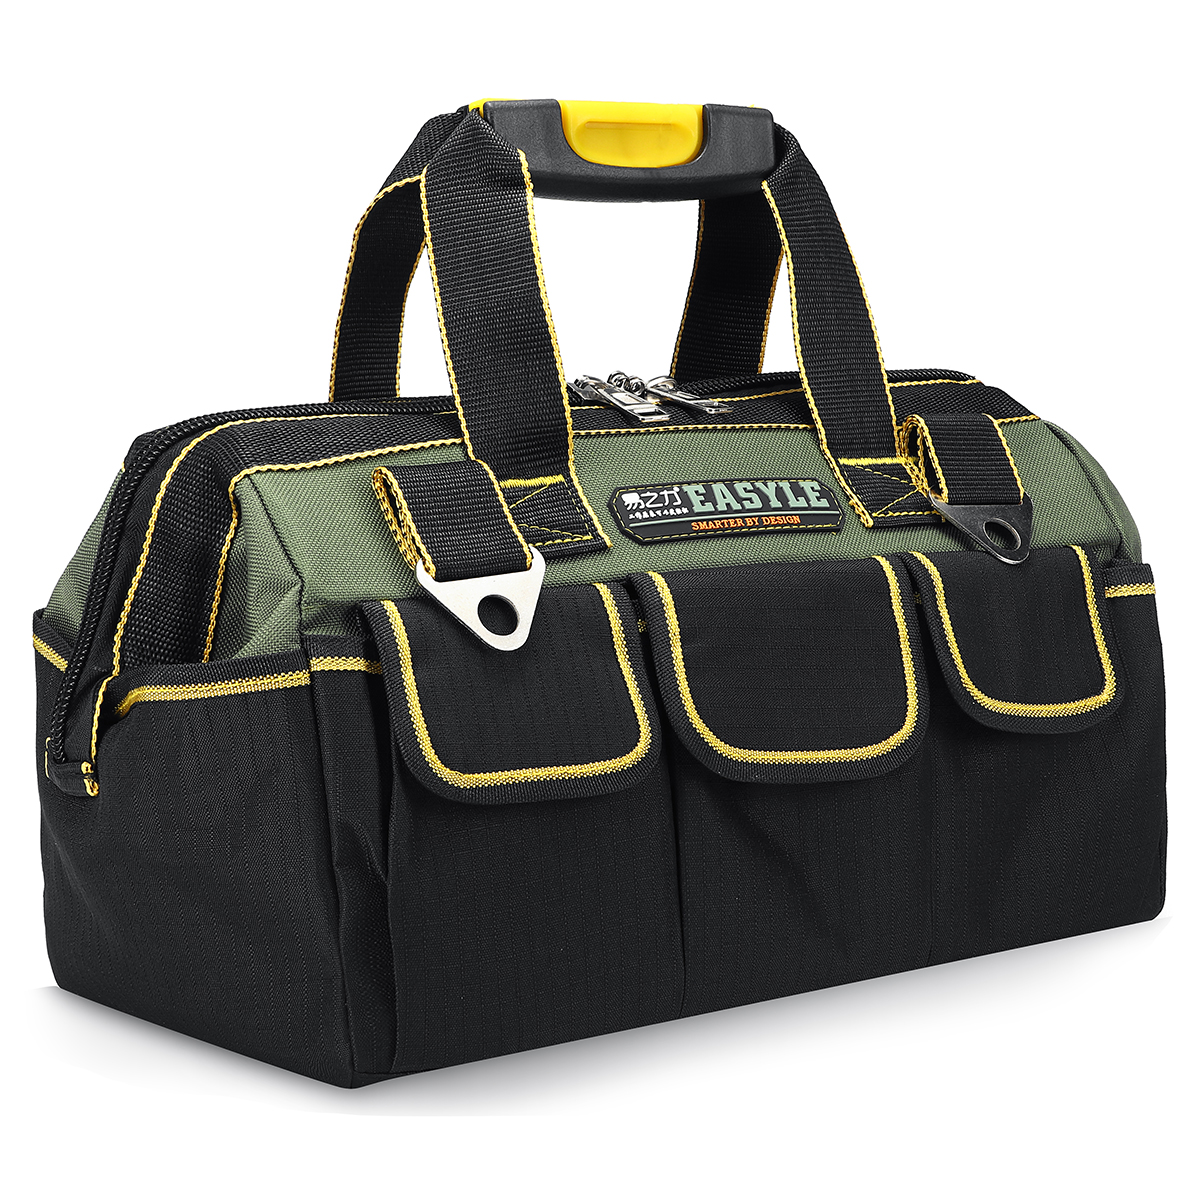 Portable Oxford Cloth Hardware Pouch Heavy Duty Tool Bag Case 13 16 18 20